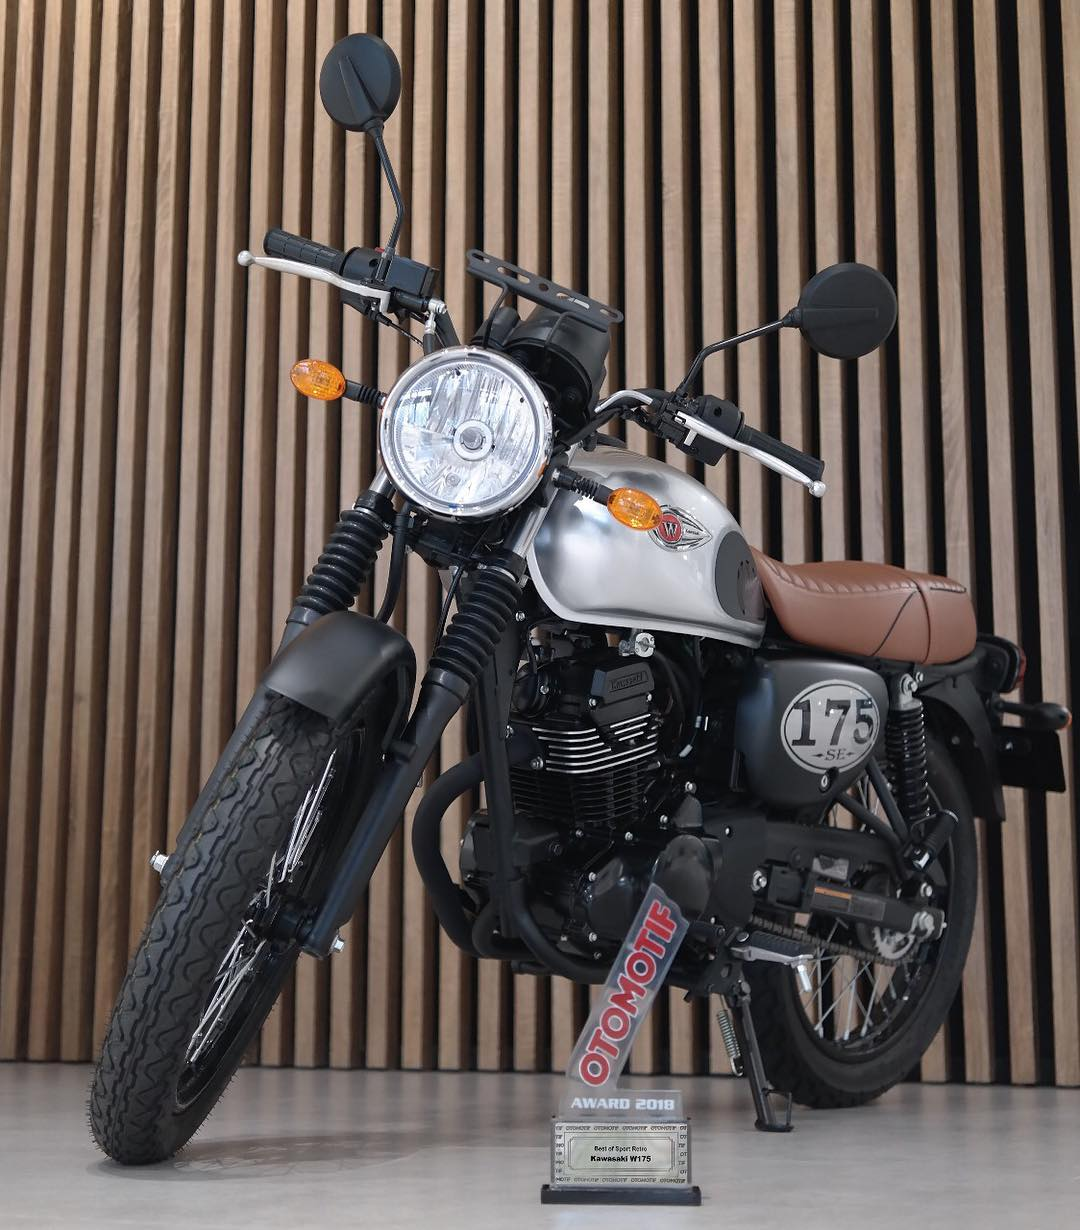 Kawasaki W175 Raih Best of Retro Sport Otomotif Award 2018